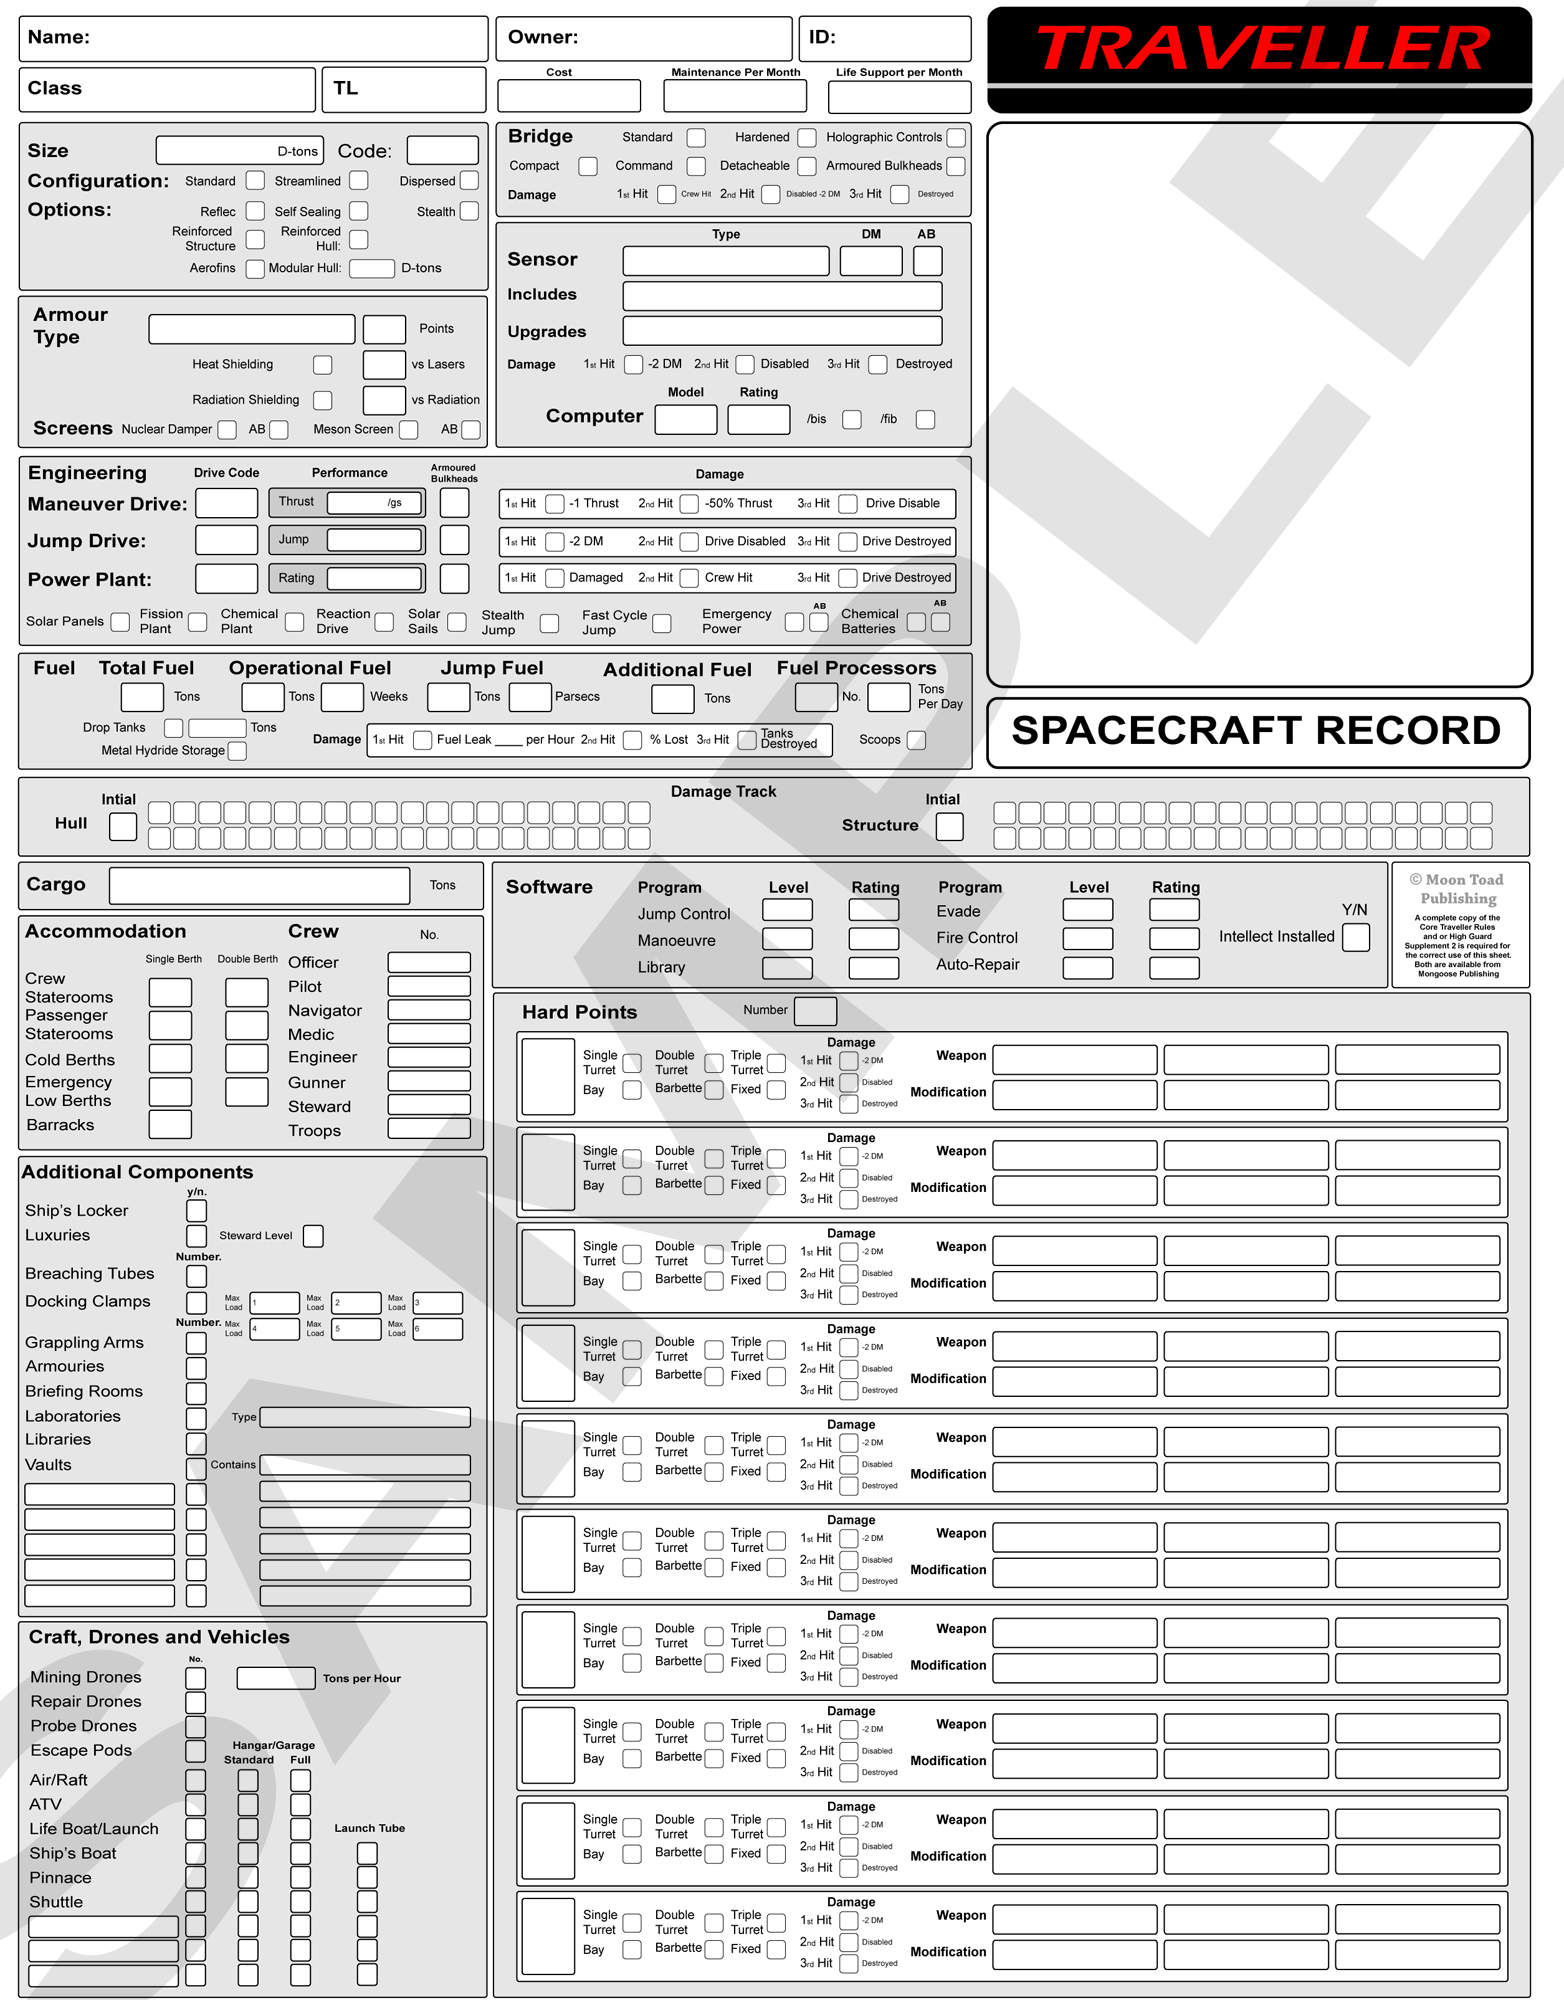 Traveller Ship Sheet